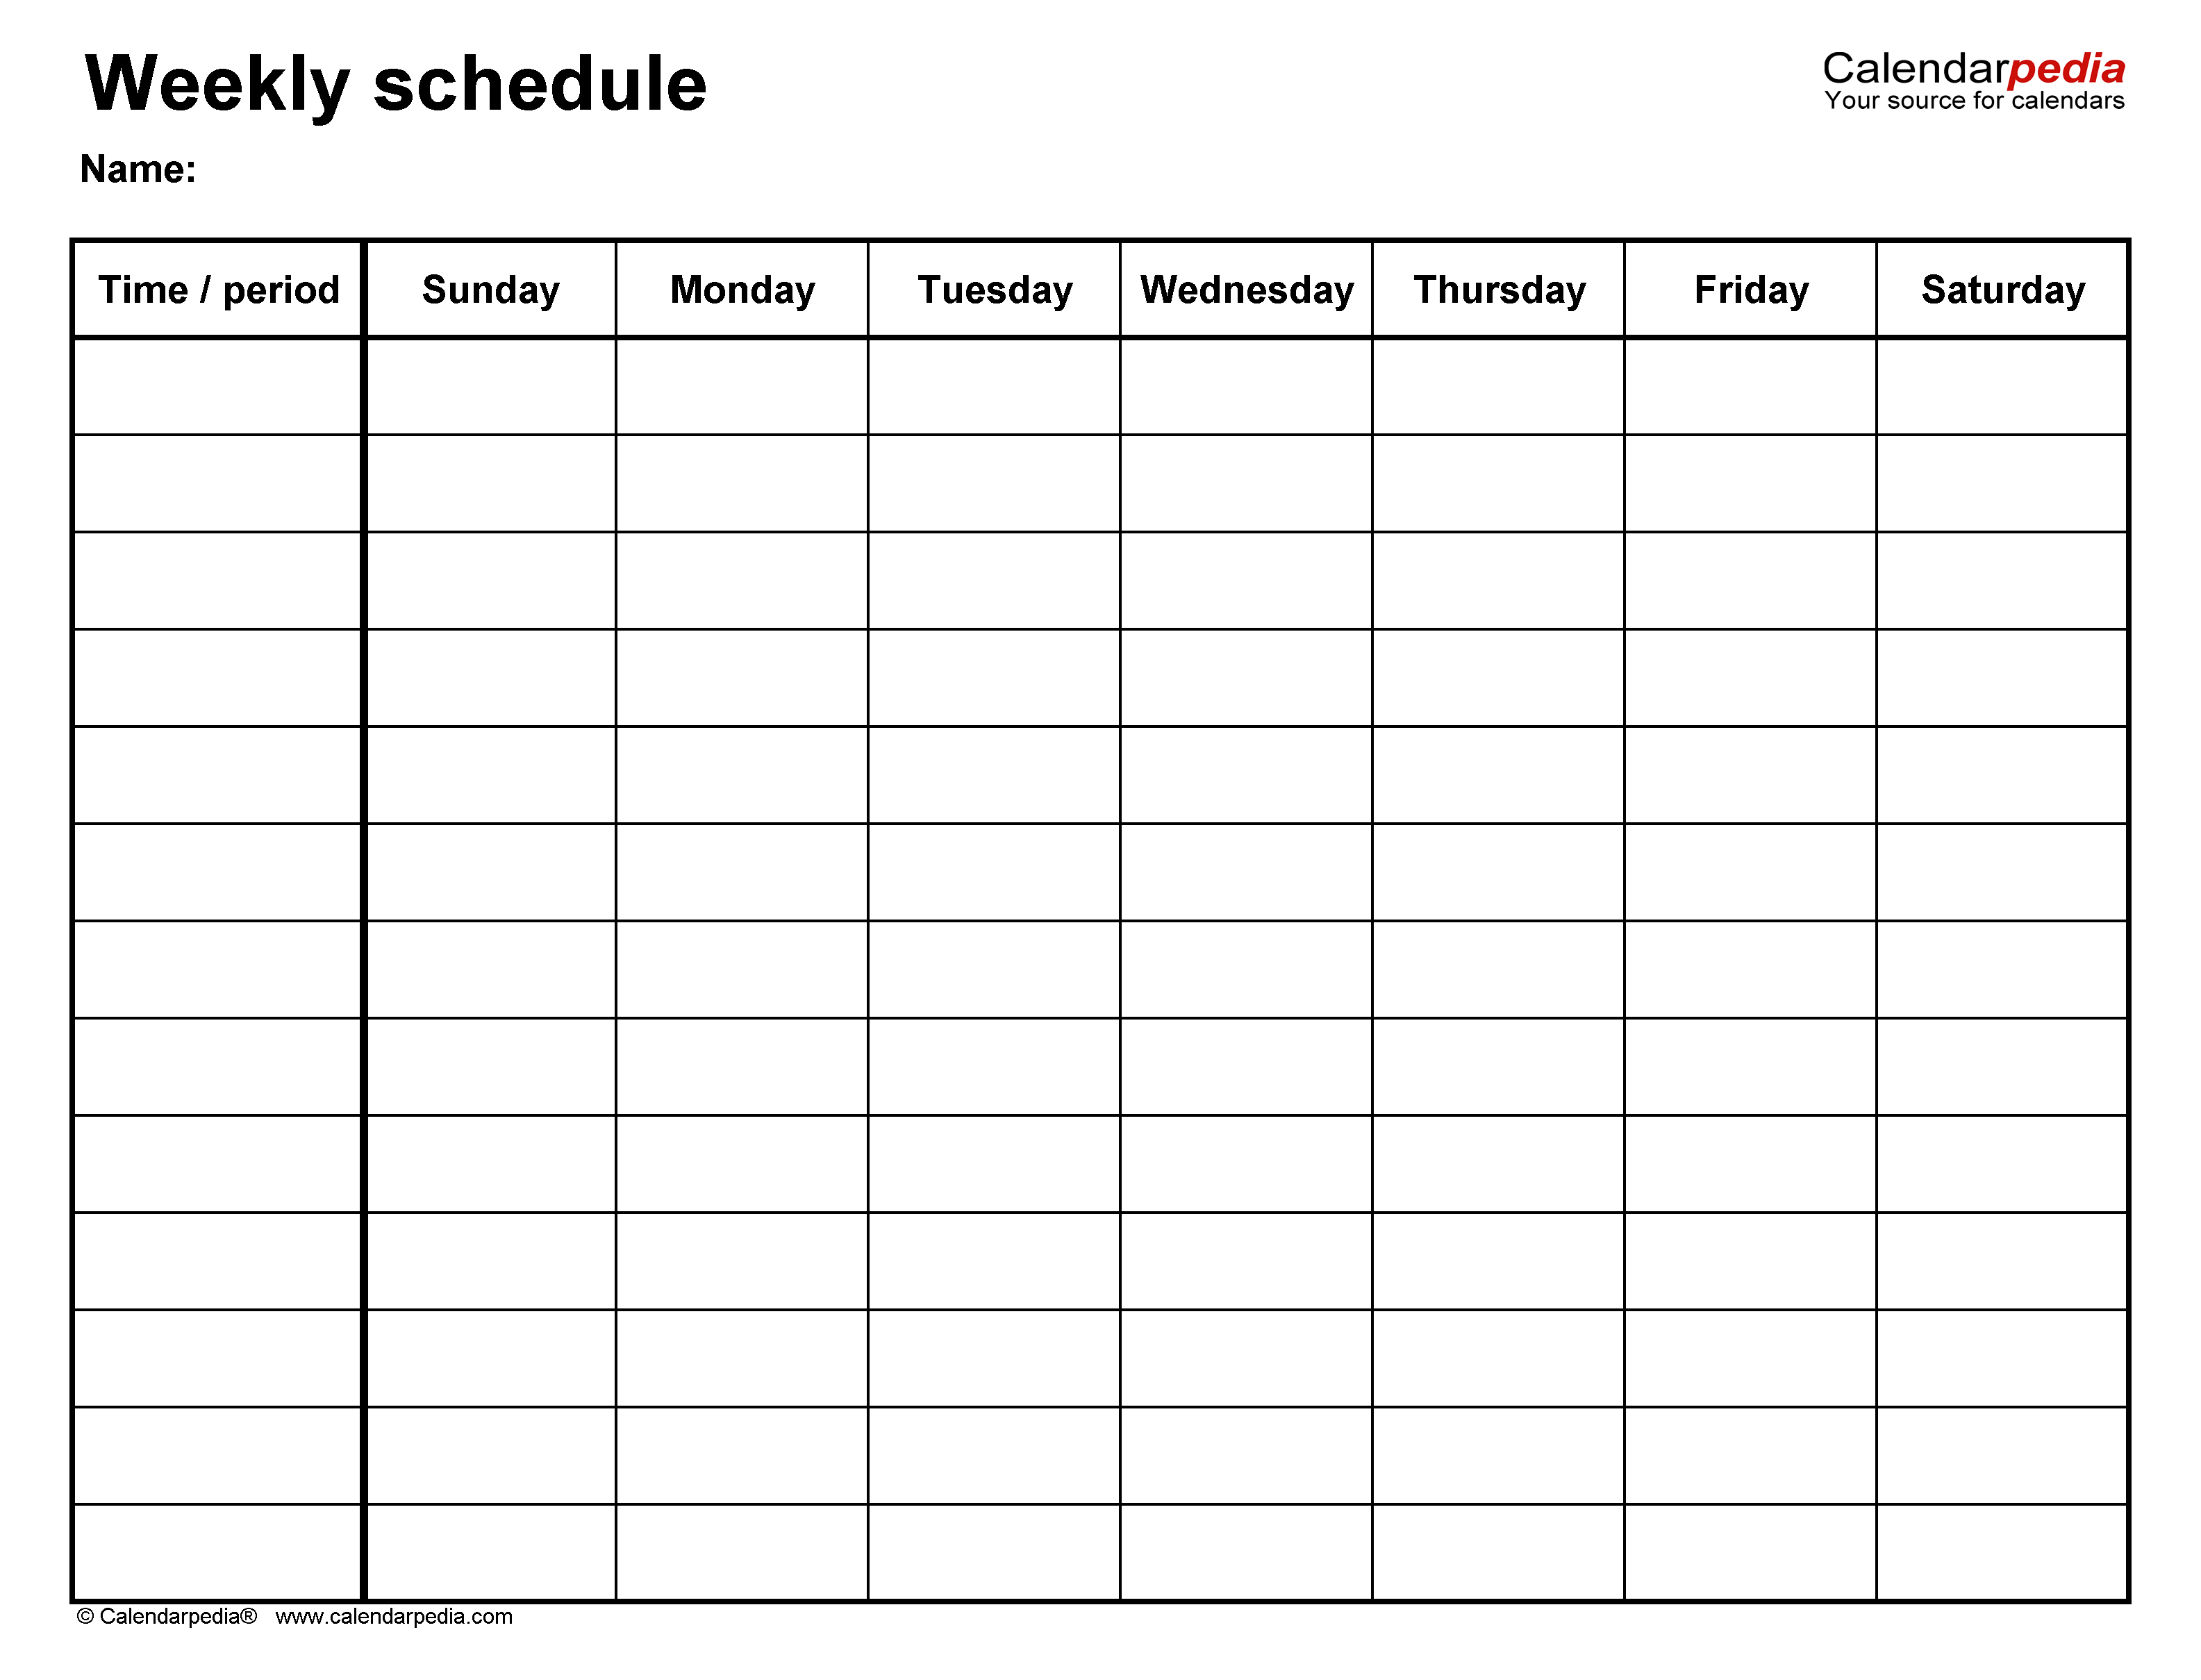 Free Weekly Schedule Templates For Word - 18 Templates throughout Sunday Thru Saturday Blank Calendar